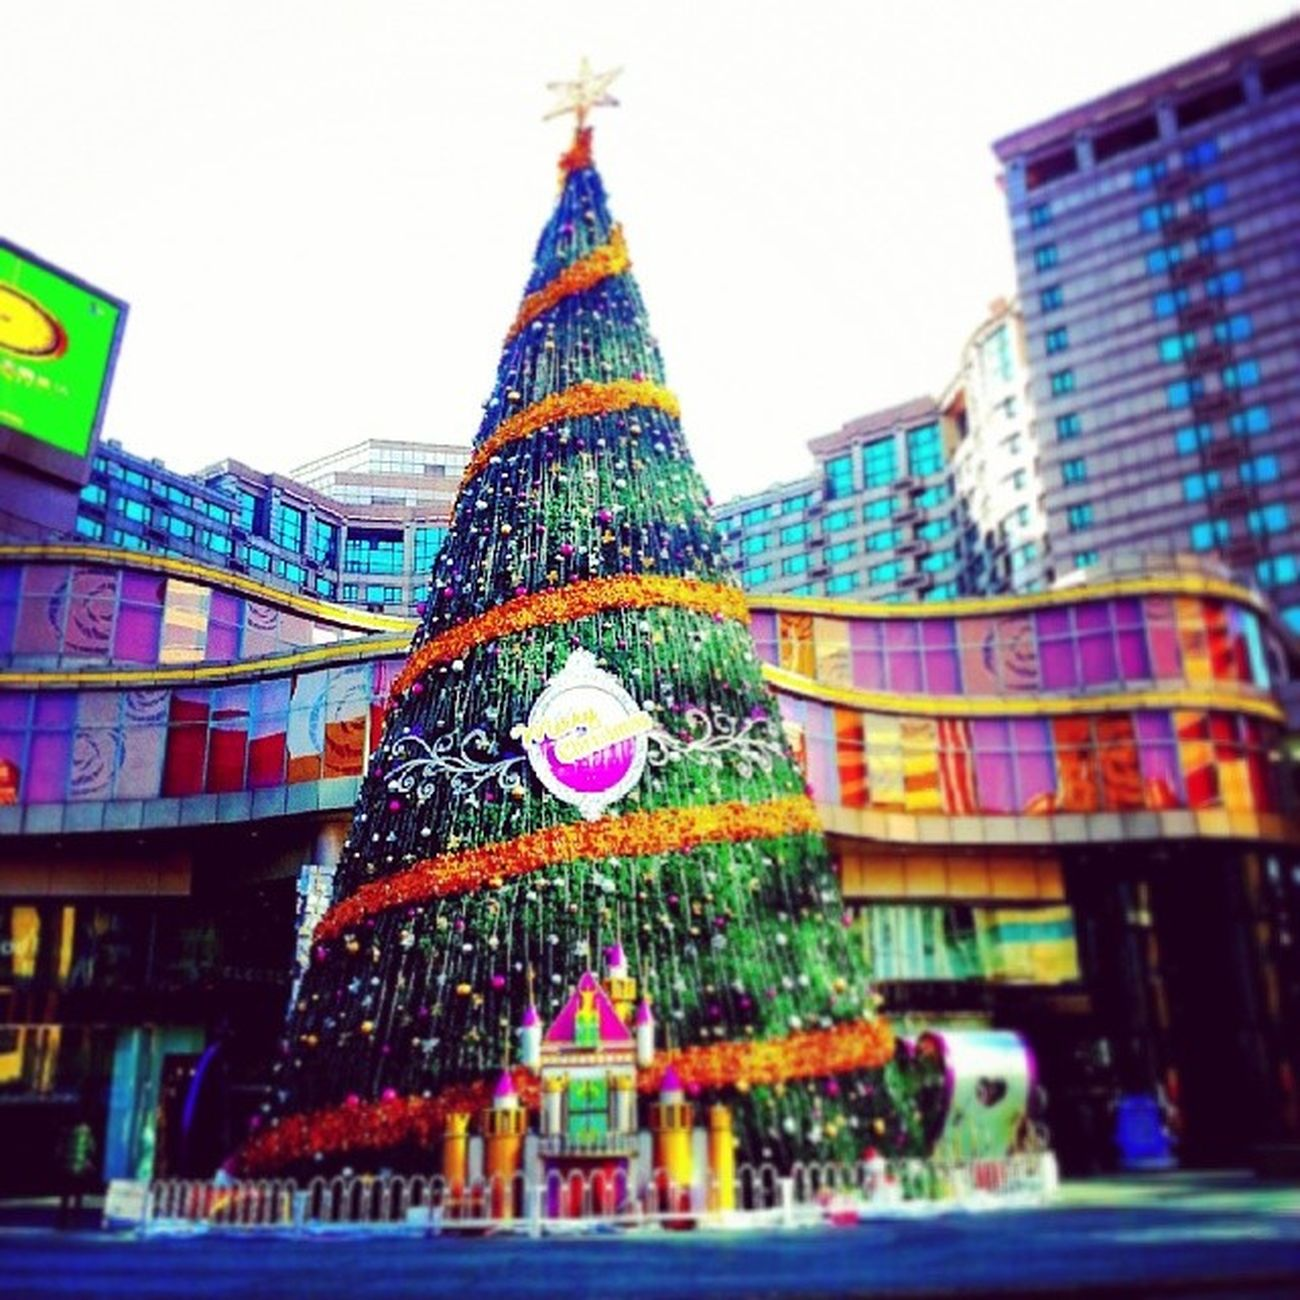 Christmas is coming Beijing Christmastree Christmas December instaplace instamood China winter iPhoto ipic